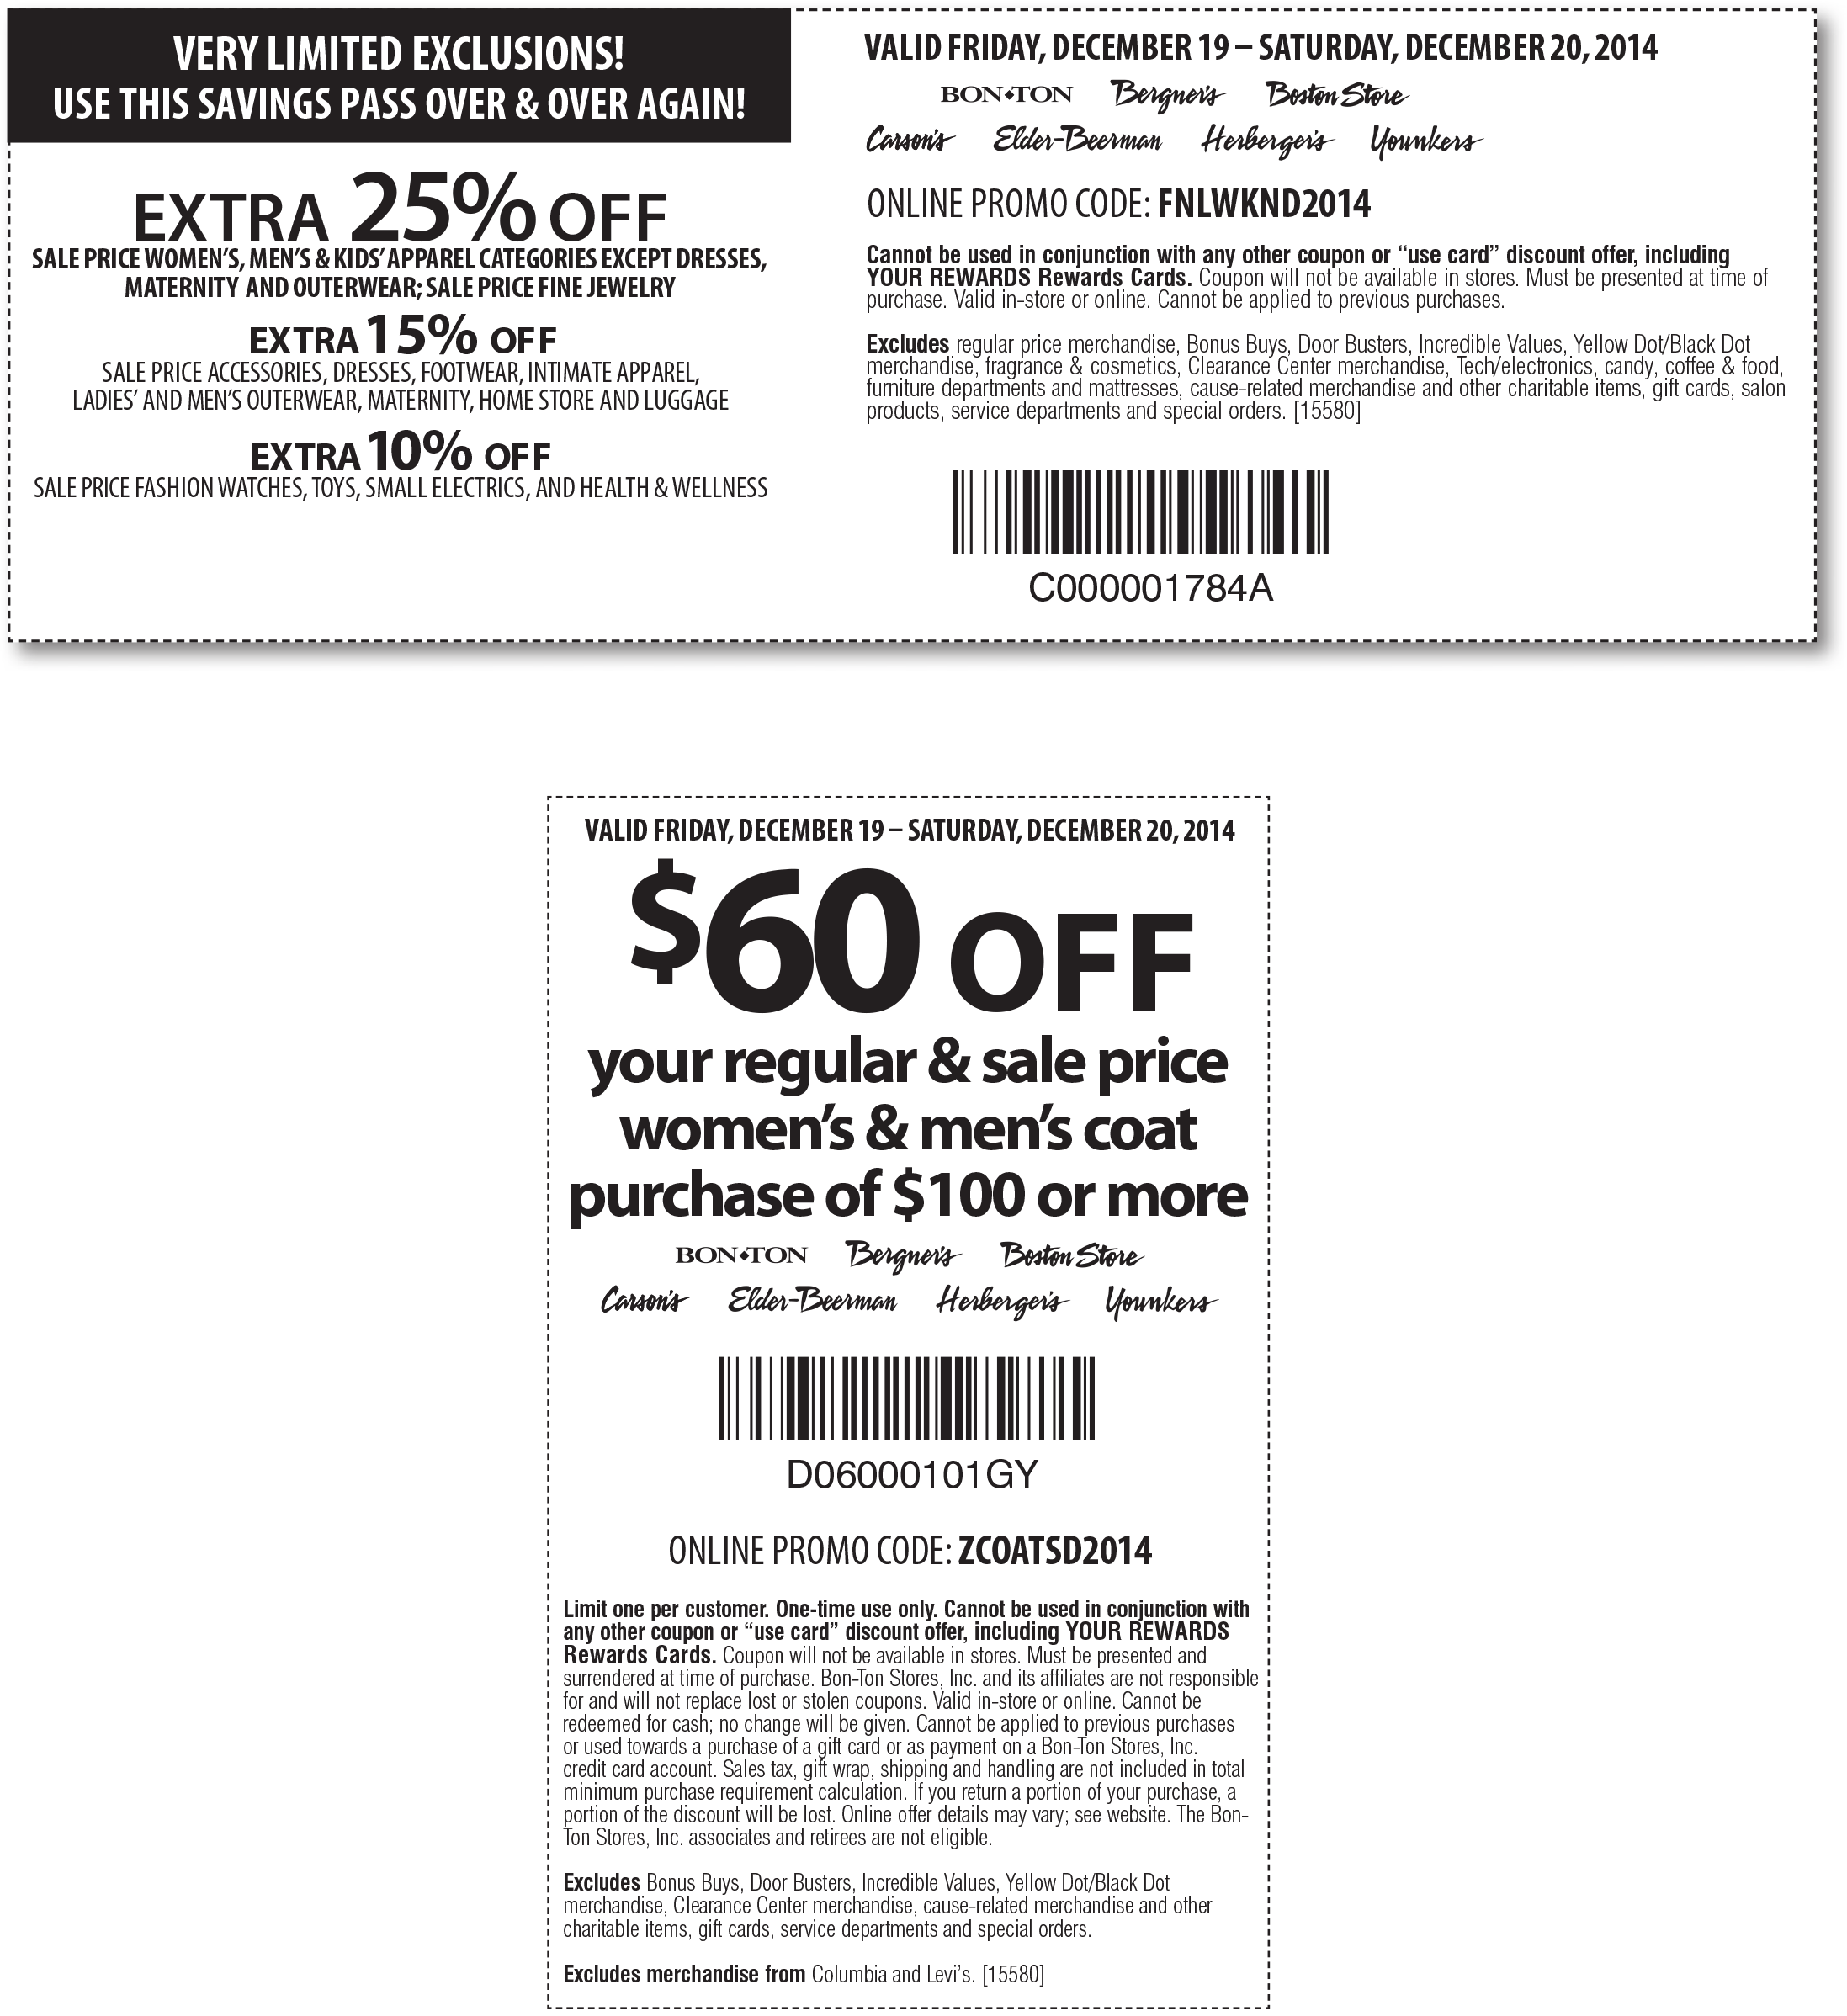 Carsons Coupon March 2017 Extra 25% off sale apparel today at Carsons, Bon Ton & sister stores, or online via promo code FNLWKND2014